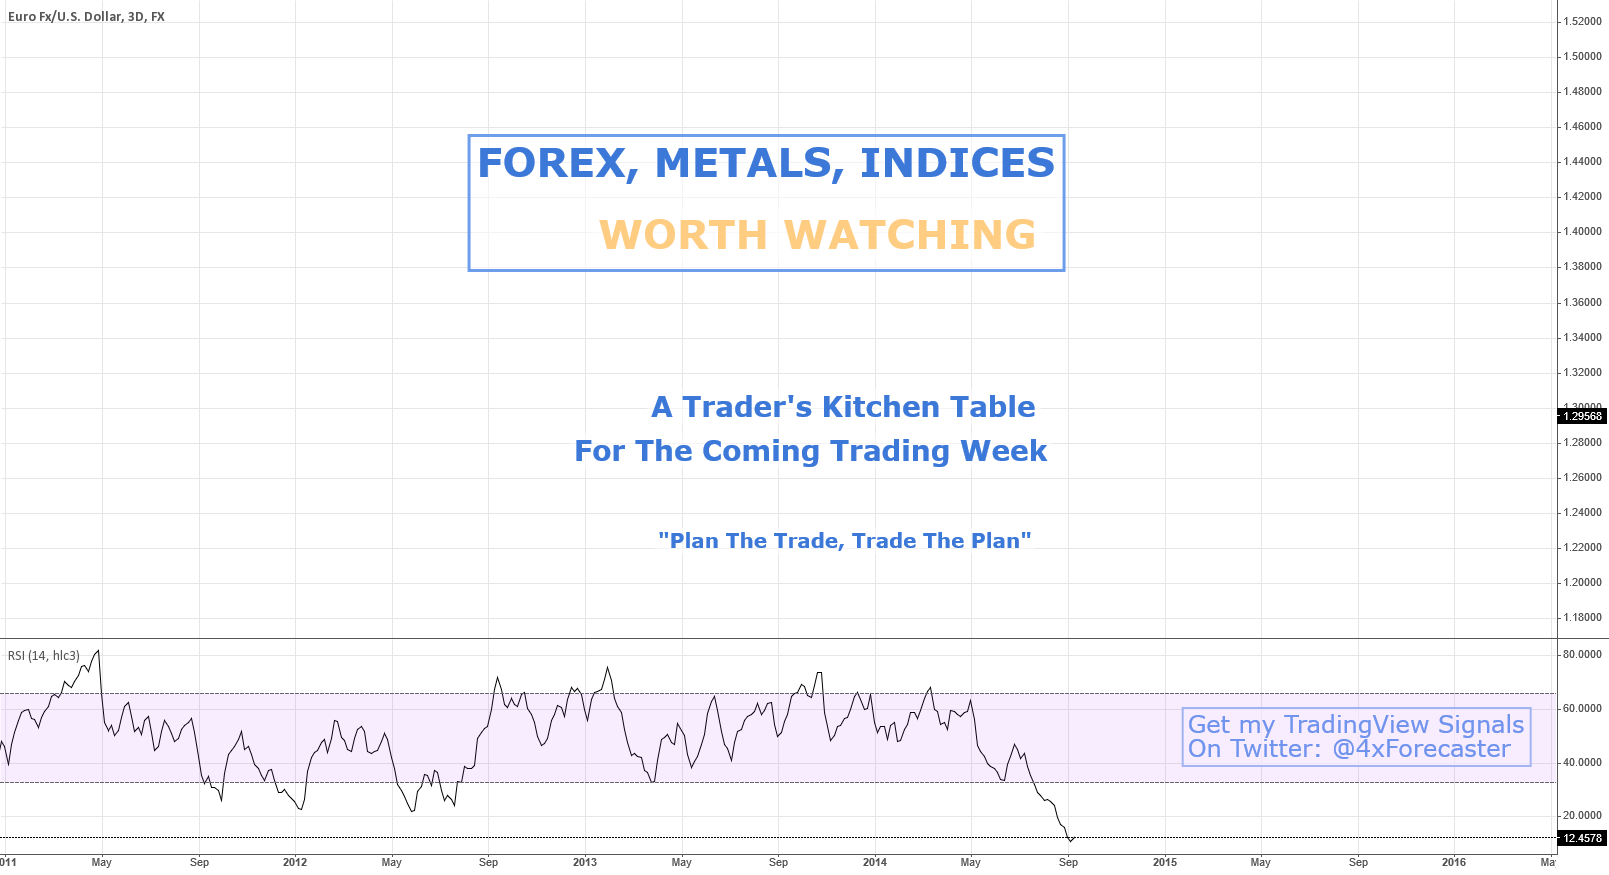 FOREX, METALS, INDICES - What